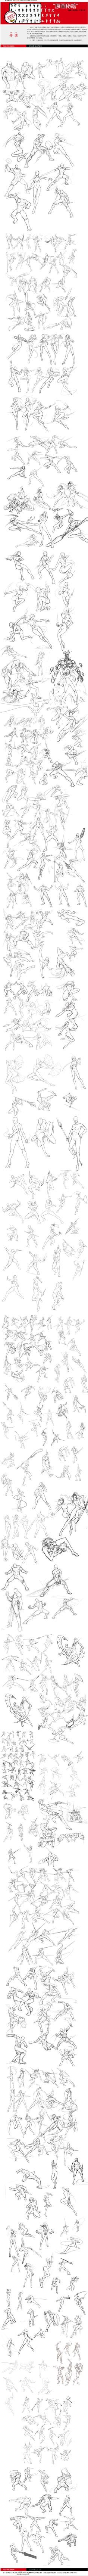 Figure Pose Reference - 采集图片| This is exactly what I needed!!♡